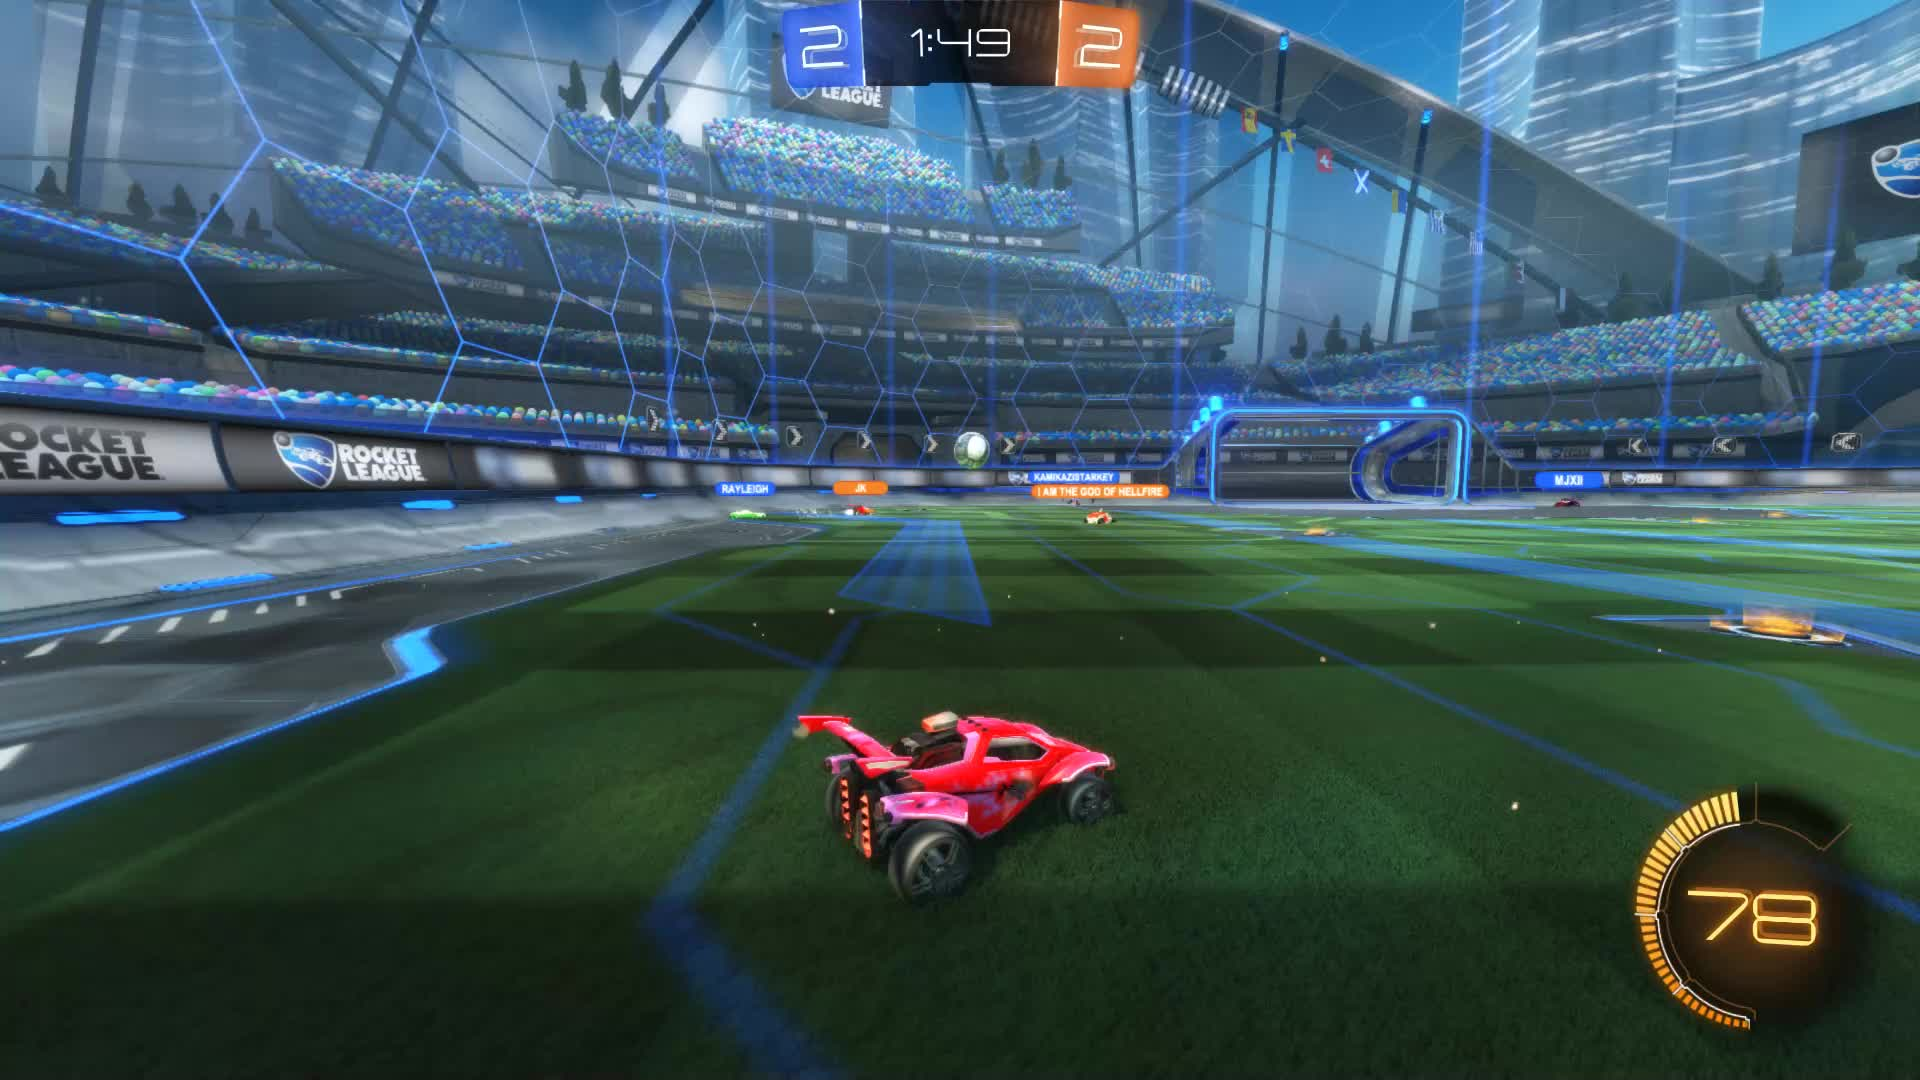 Gif Your Game, GifYourGame, Rocket League, RocketLeague, SCOTLAND FOREVER, Goal 5: SCOTLAND FOREVER GIFs